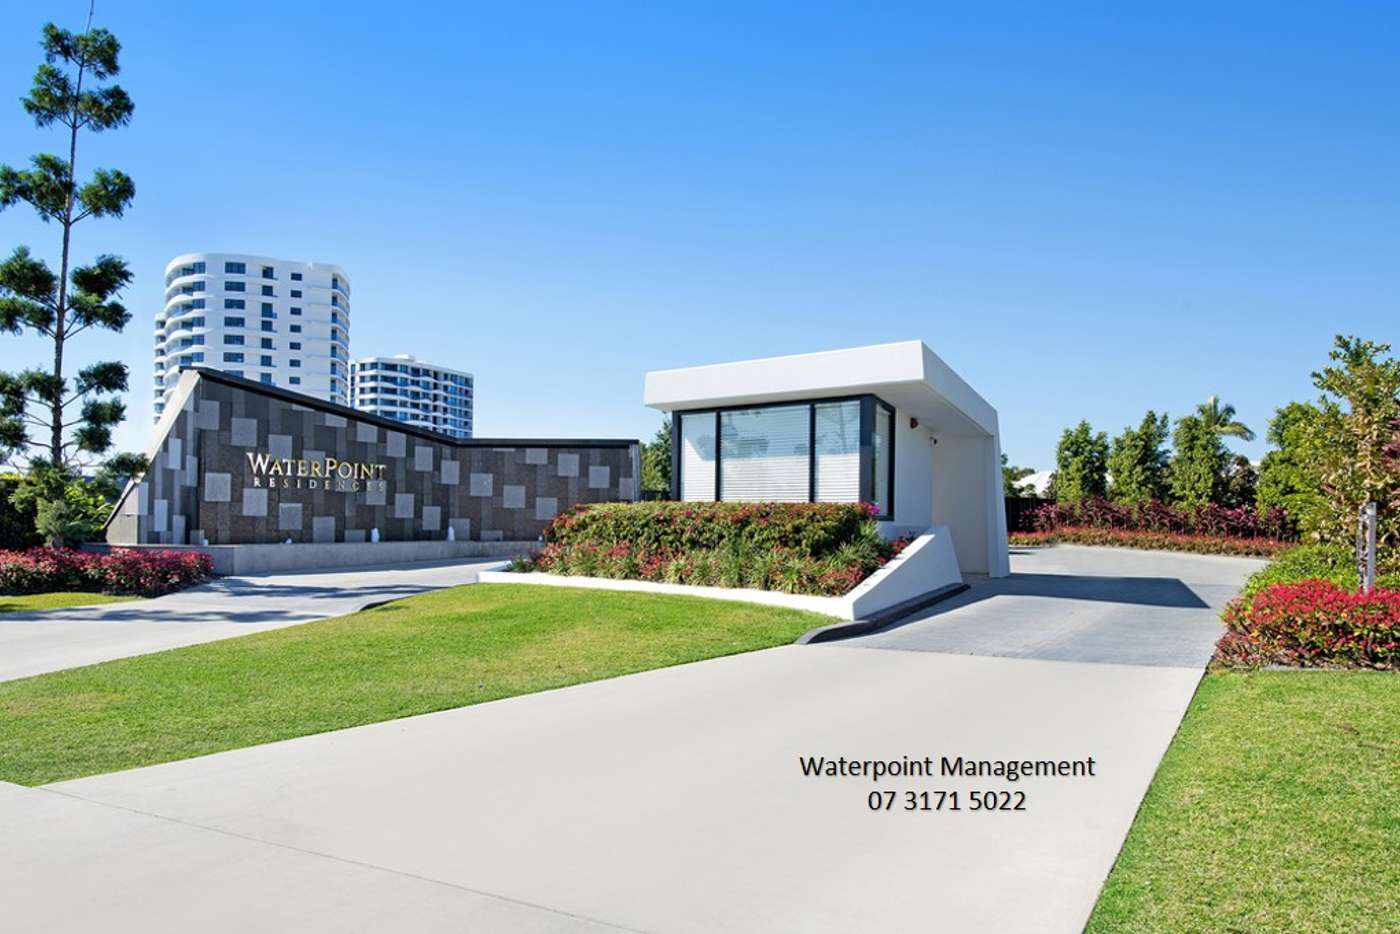 Main view of Homely apartment listing, 3510/5 HARBOURSIDE COURT, Biggera Waters QLD 4216